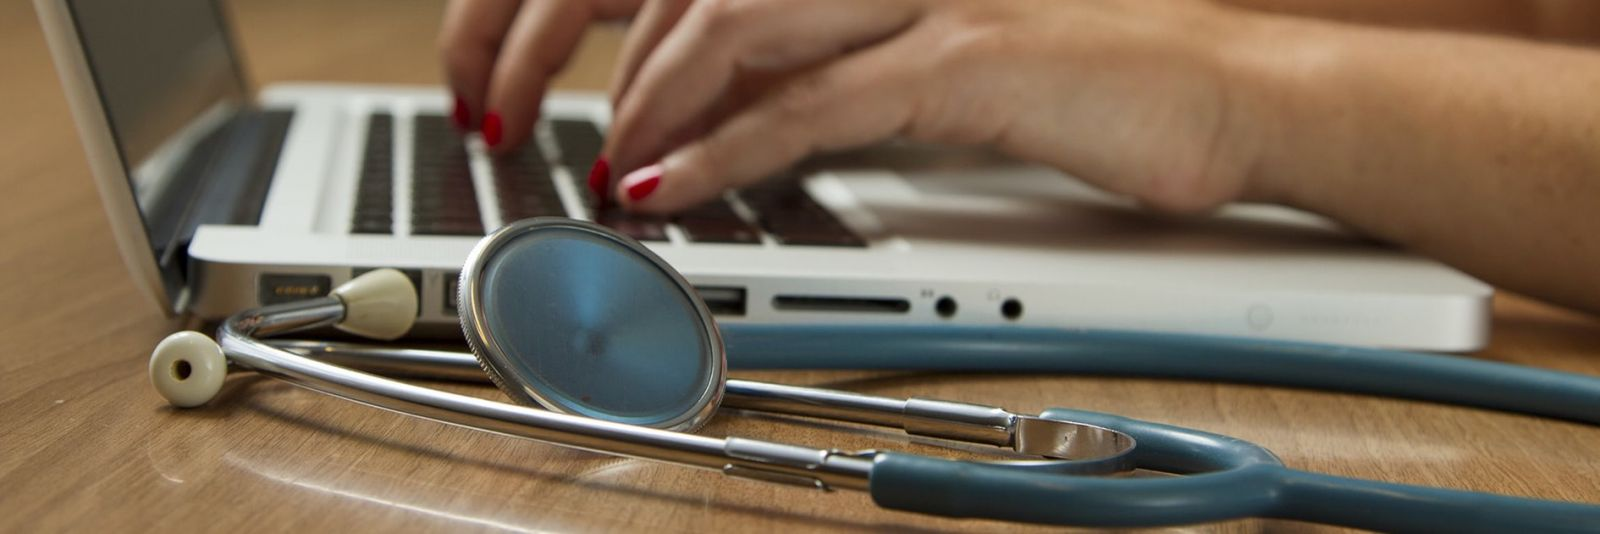 Hands typing on a laptop next to a stethoscope